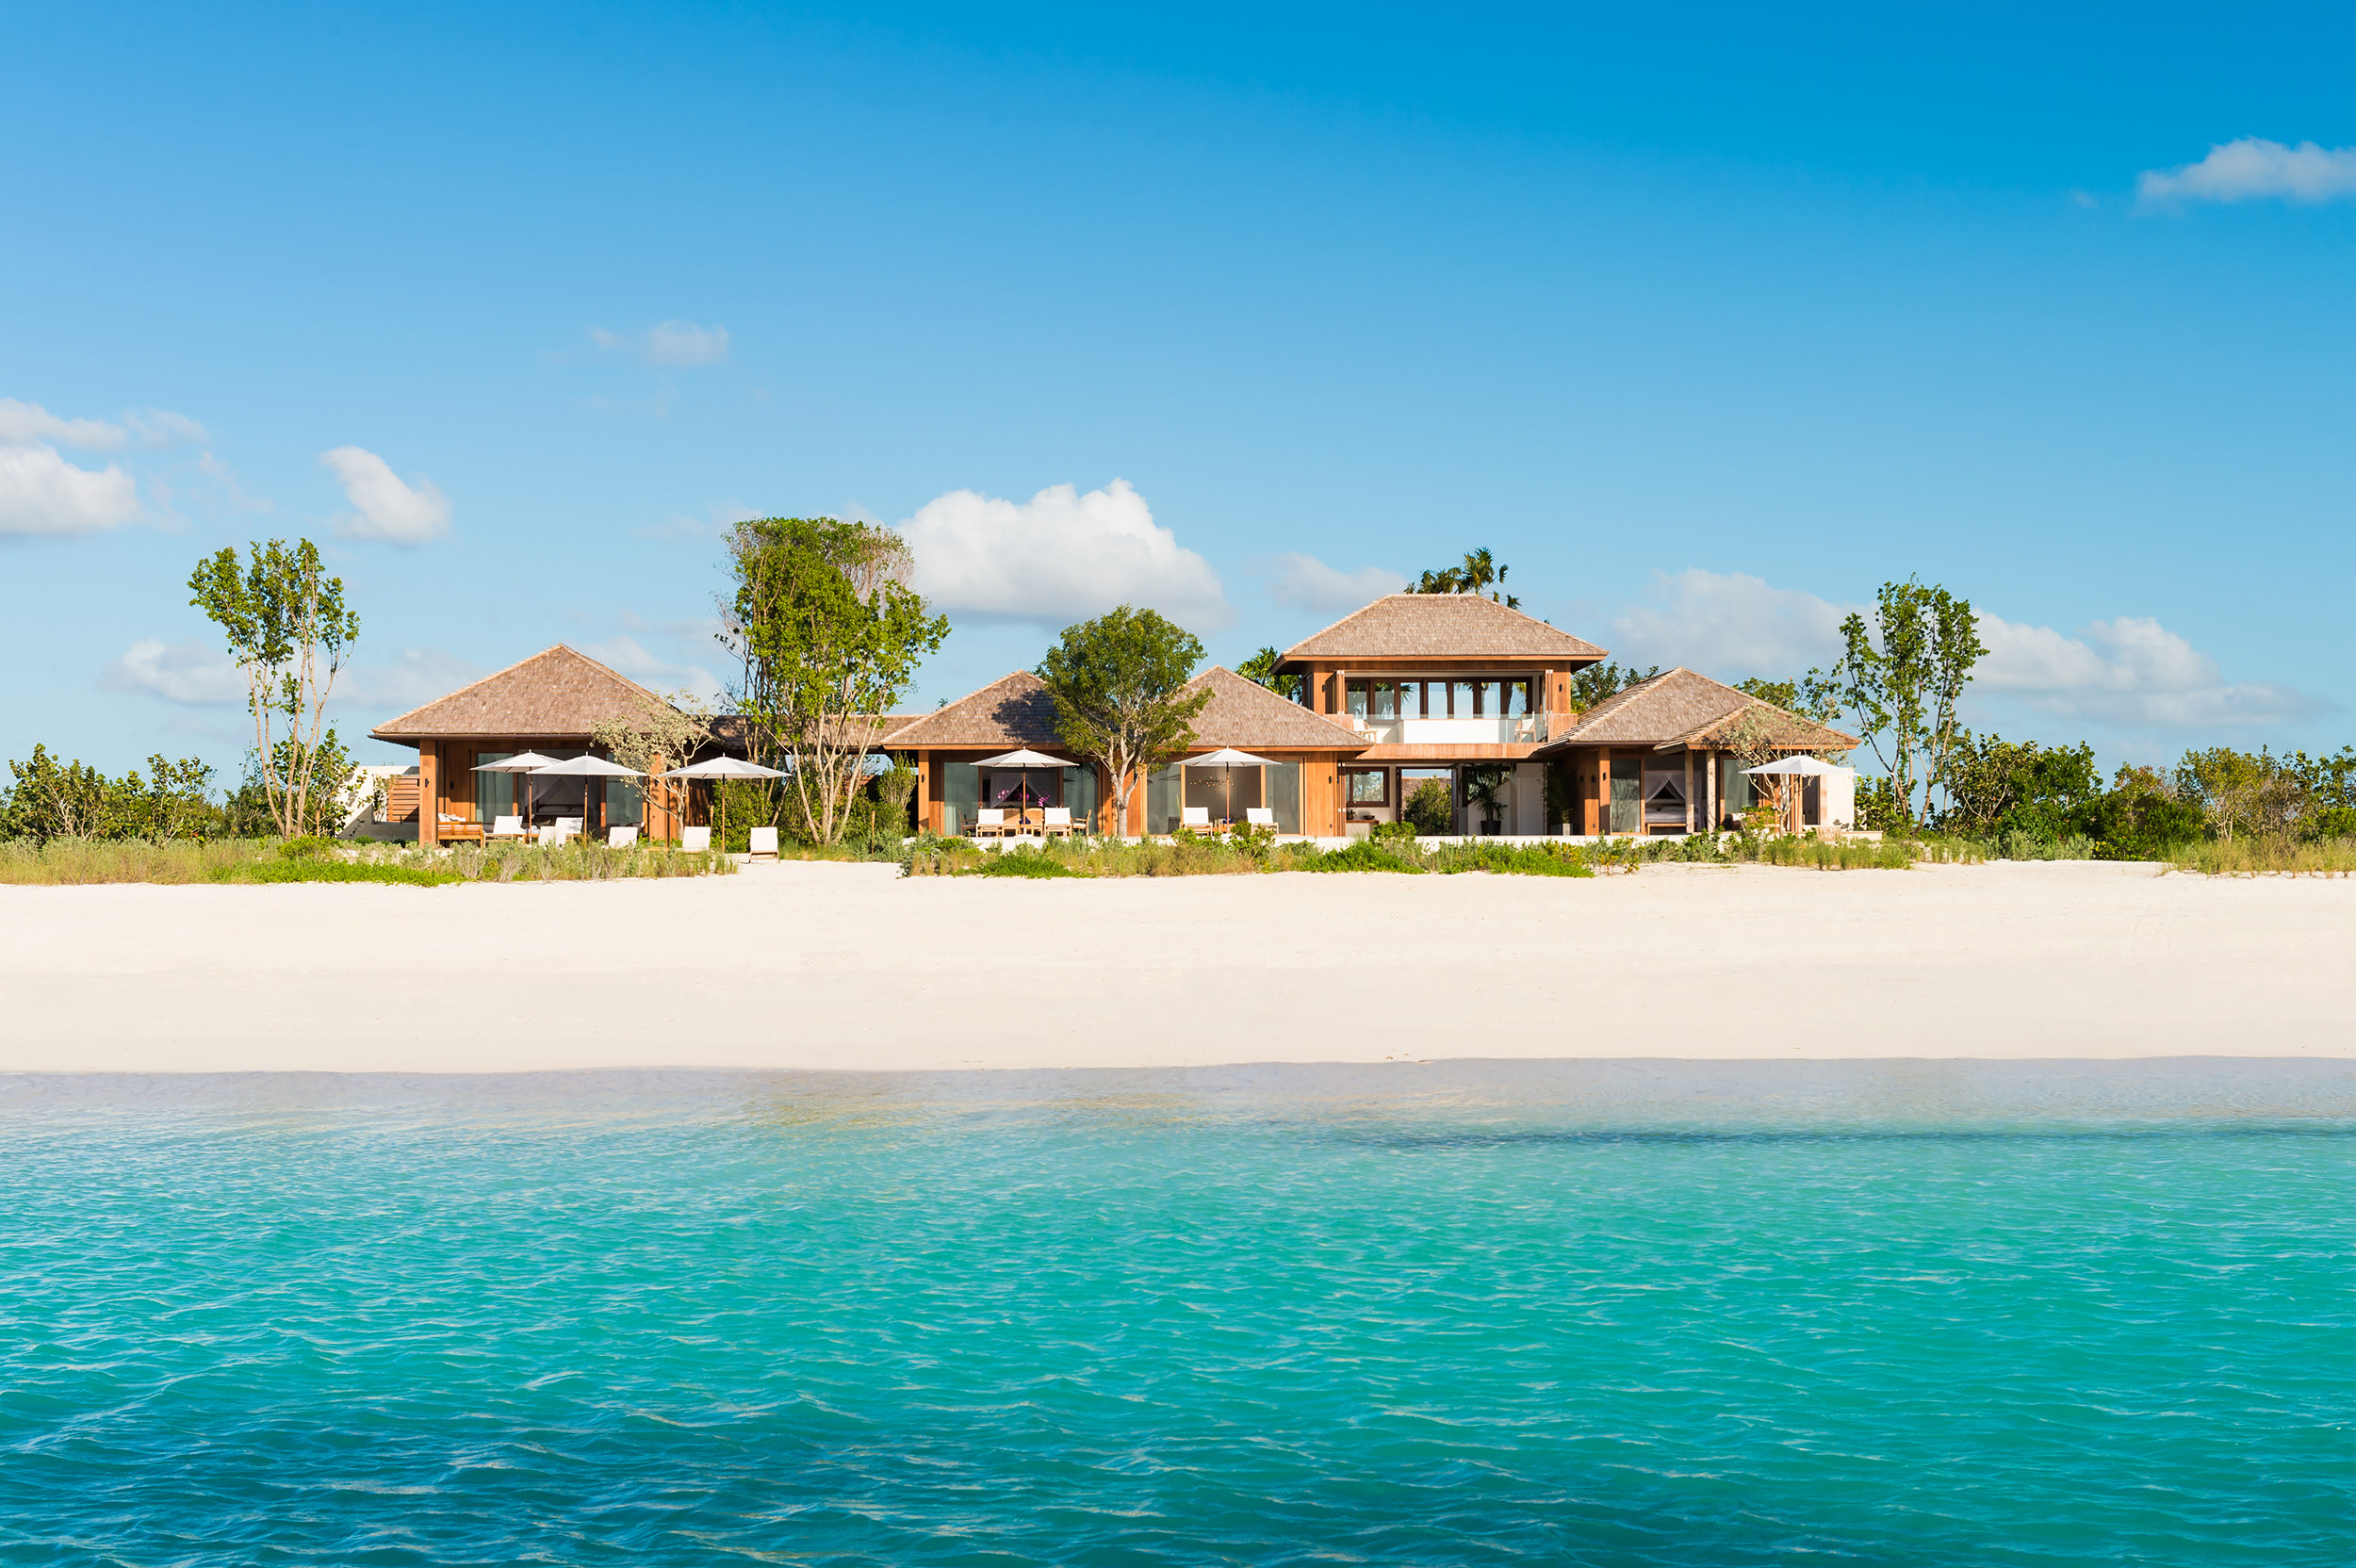 Serenity - oceanside view of the villa